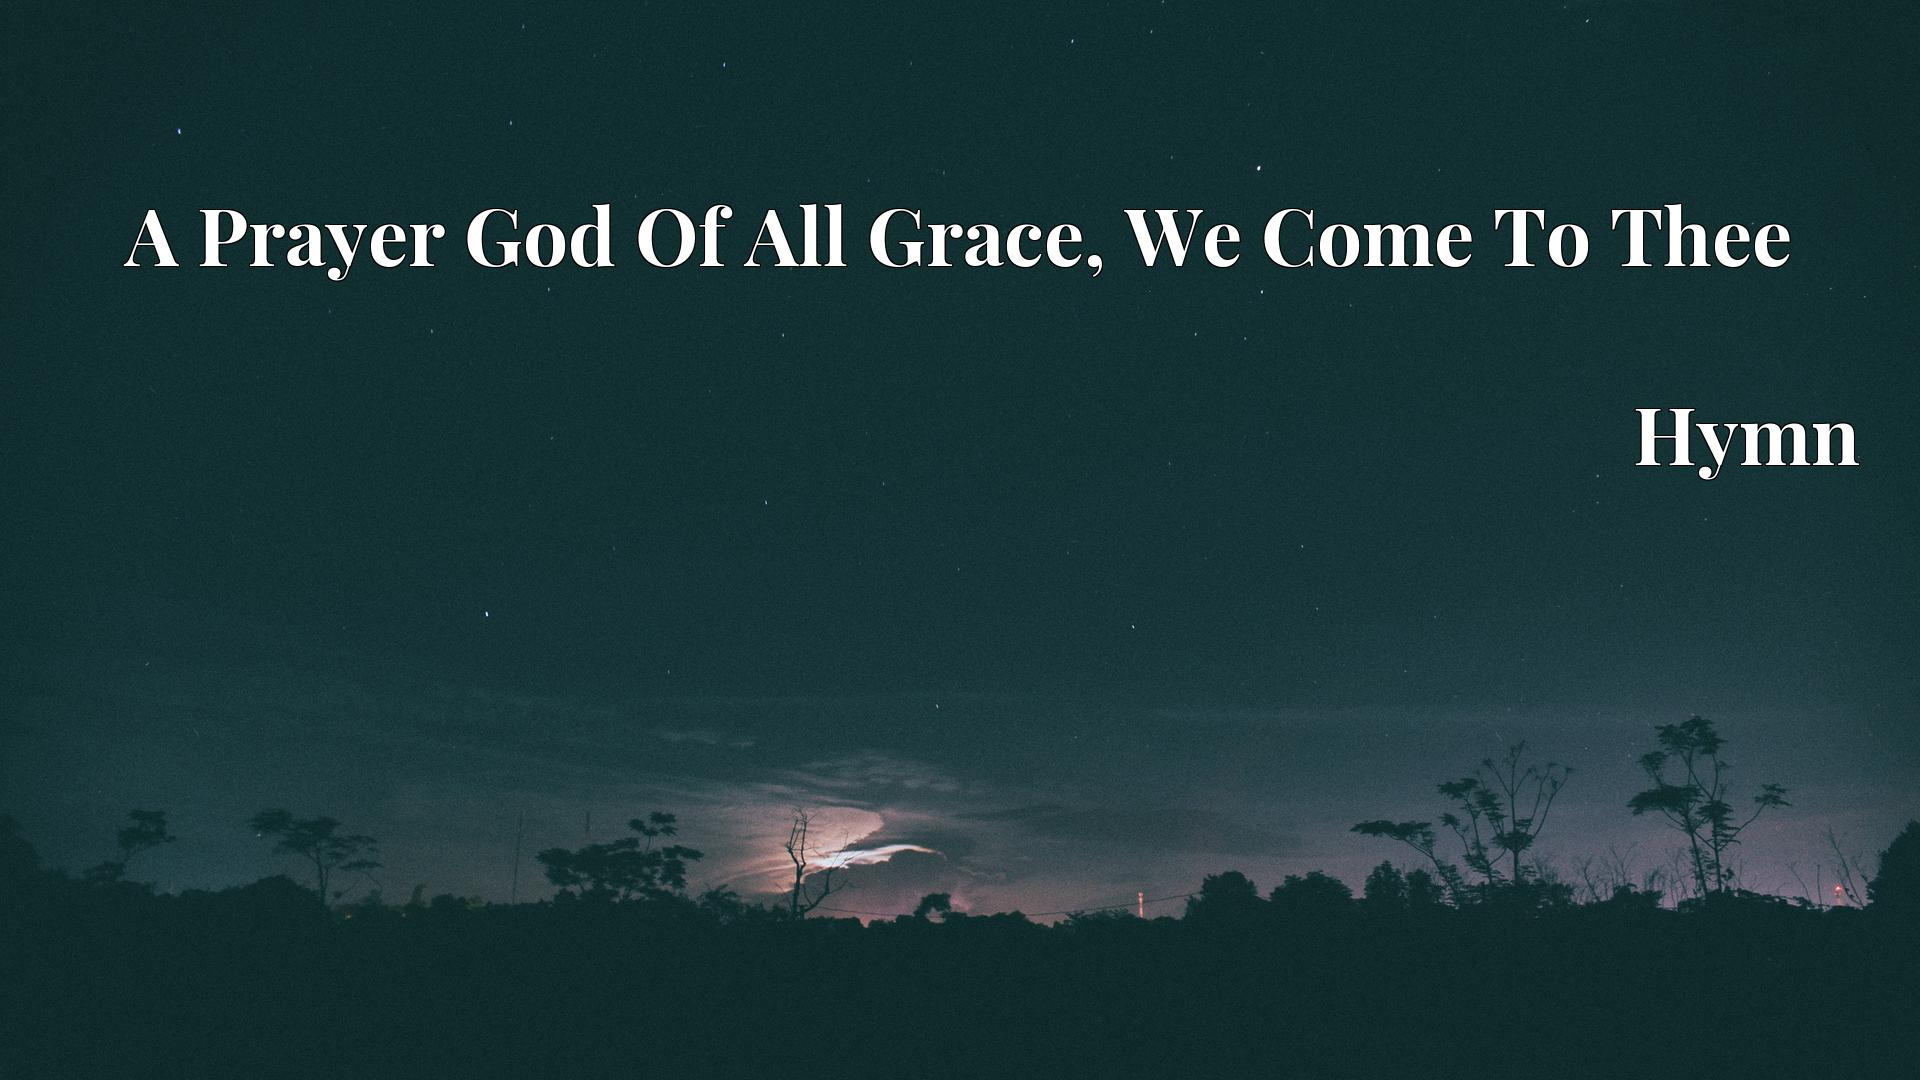 A Prayer God Of All Grace, We Come To Thee Hymn